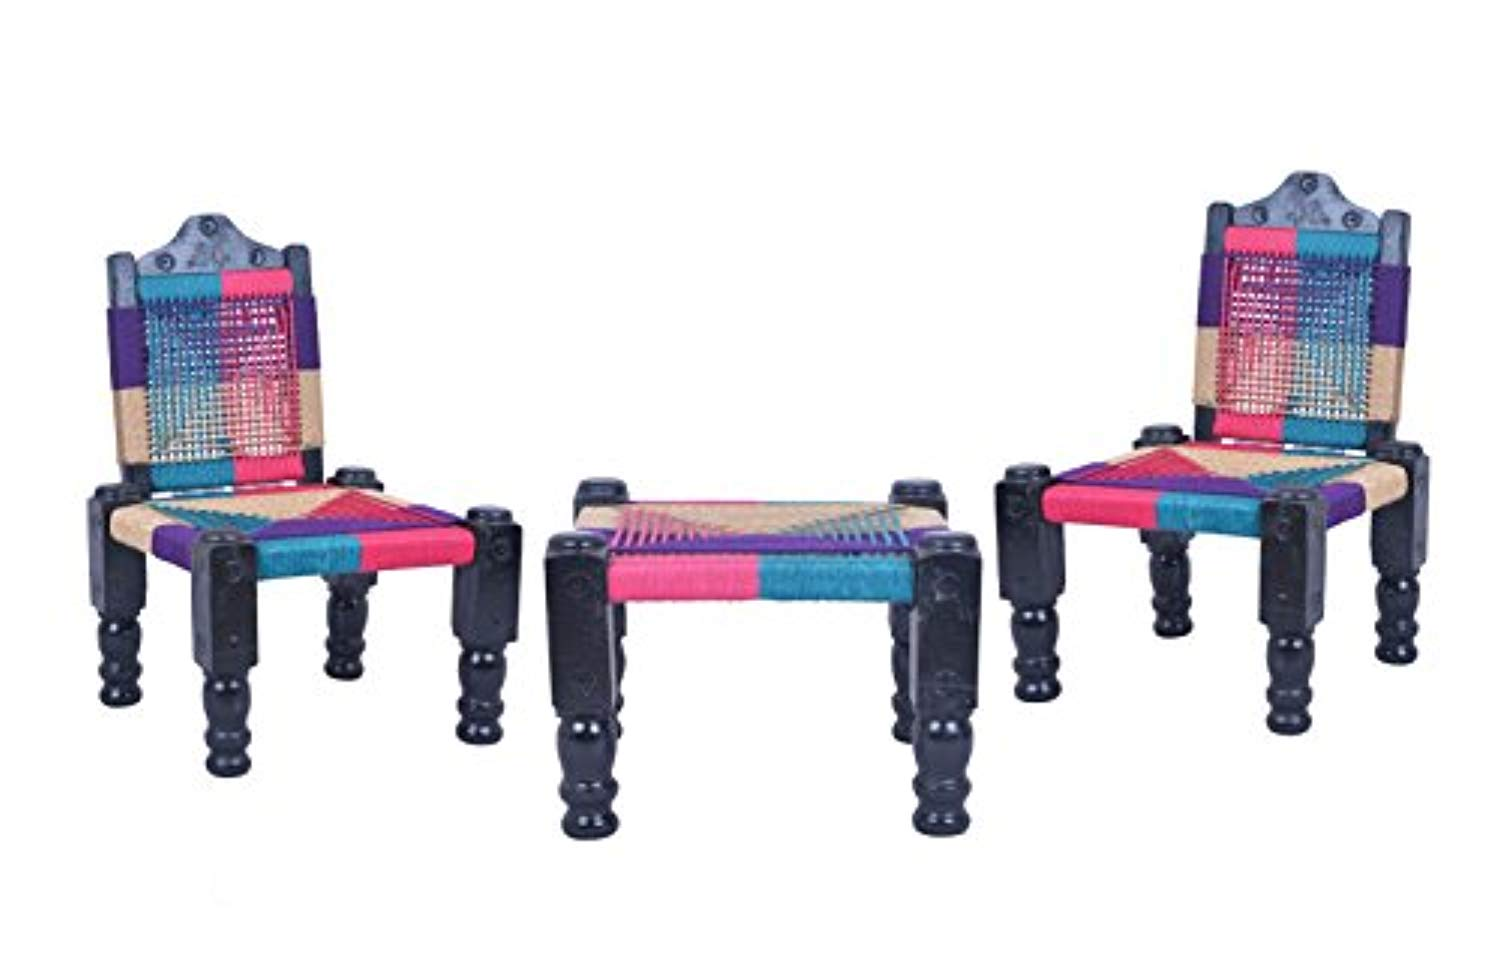 IRA High Wooden Back Foldable Chair & Khatli/Bajot Set Of 2 Chairs (Muti-Color) - IRA Furniture